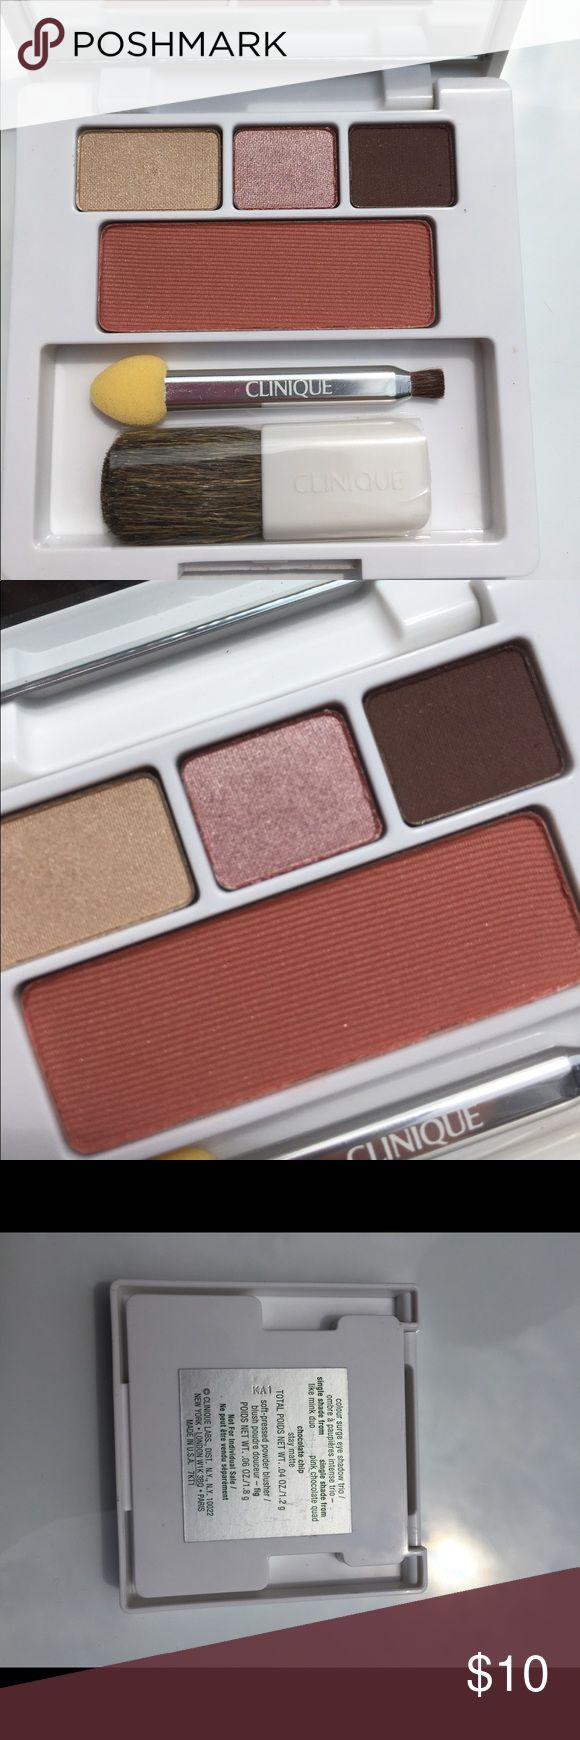 """Makeup Clinique eyeshadow trio and blush •ORIGINALLY $21.90!  • *I WILL DO MY BEST TO PACK THIS ITEM. Hopefully the pressed powders don't shatter please don't give me a bad rating if it does break, I will help to get a refund from Poshmark. •Product Name: Clinique Color Surge Eyeshadow Trio in """"Like Mink"""" """"Pink Chocolate"""" """"Chocolate Chip"""" and """"Soft Pressed Powder Blusher"""" •Comes with mirror, two different eyeshadow brushes, and a blush brush. •Brand new and never swatched.  • About 3 x 3…"""